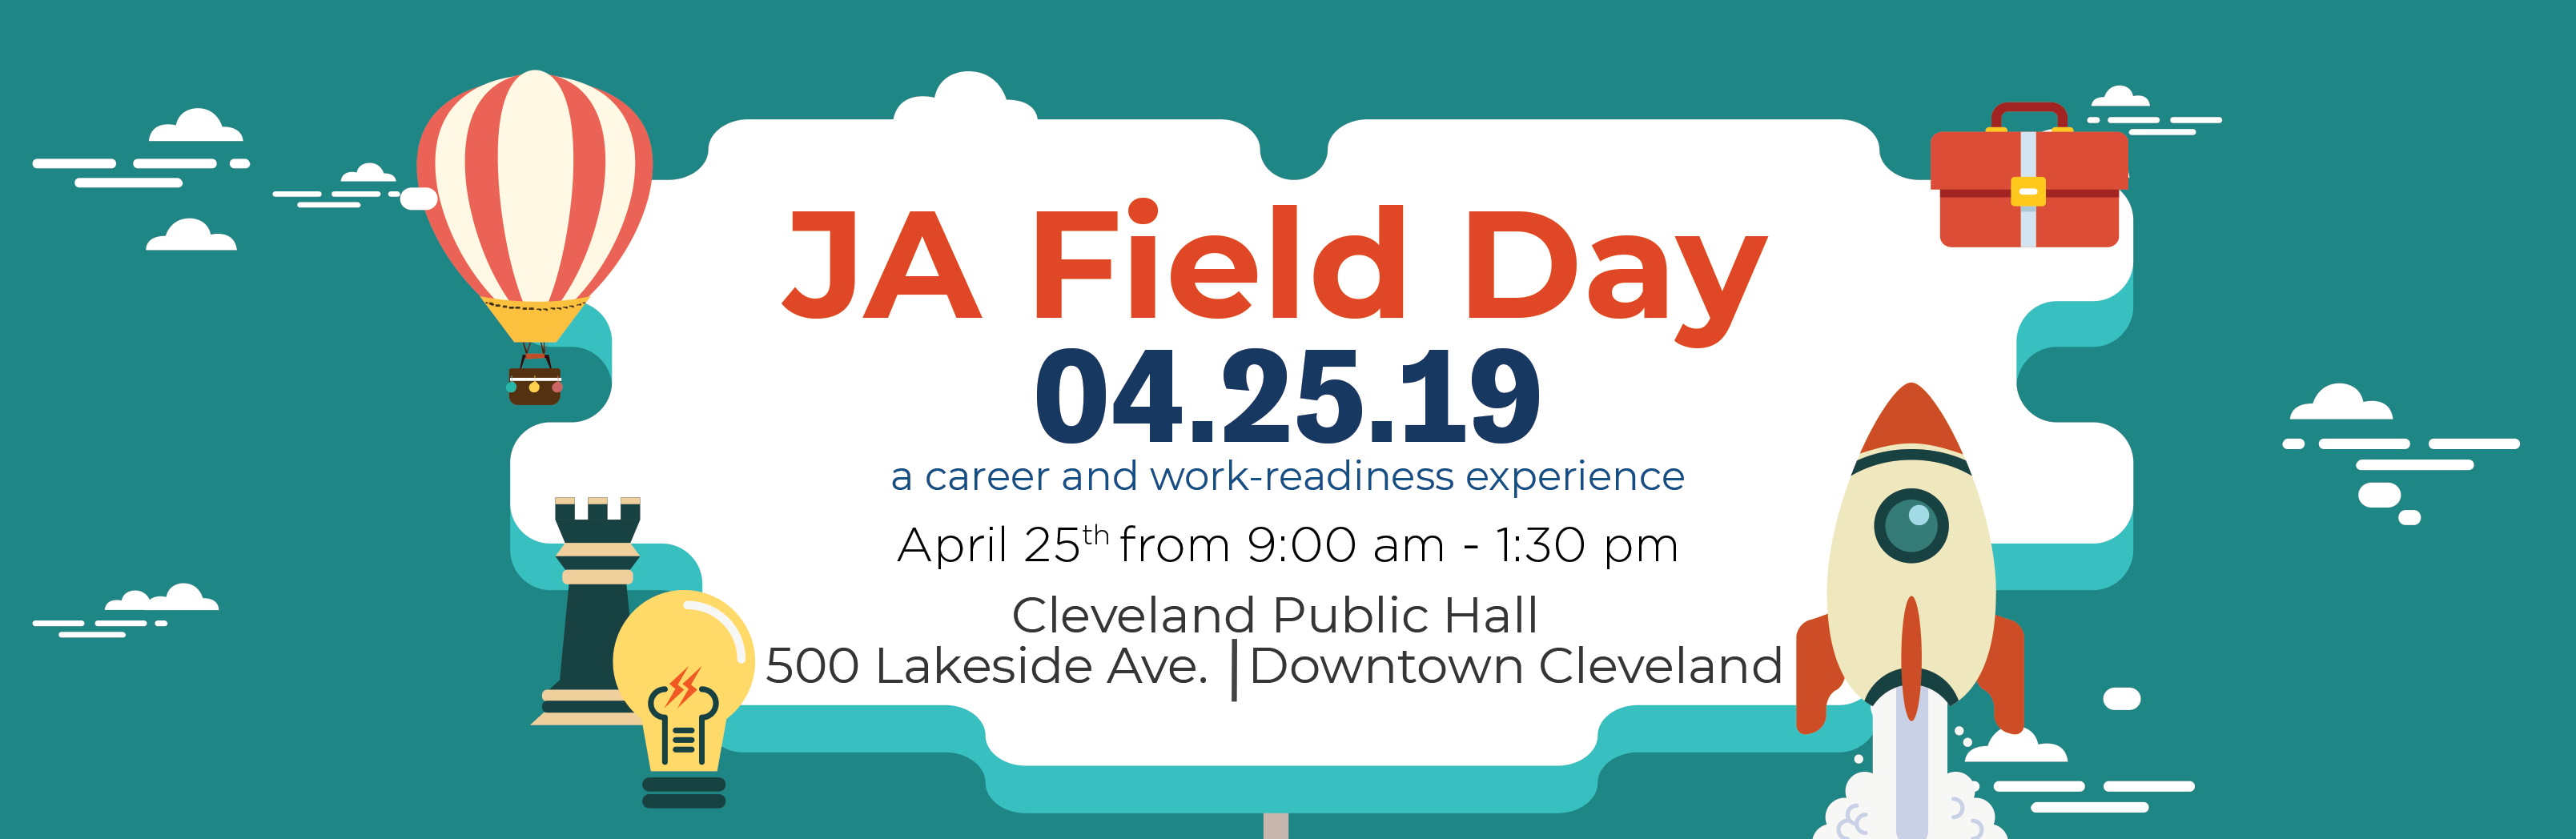 JA Field Day 2019 Header